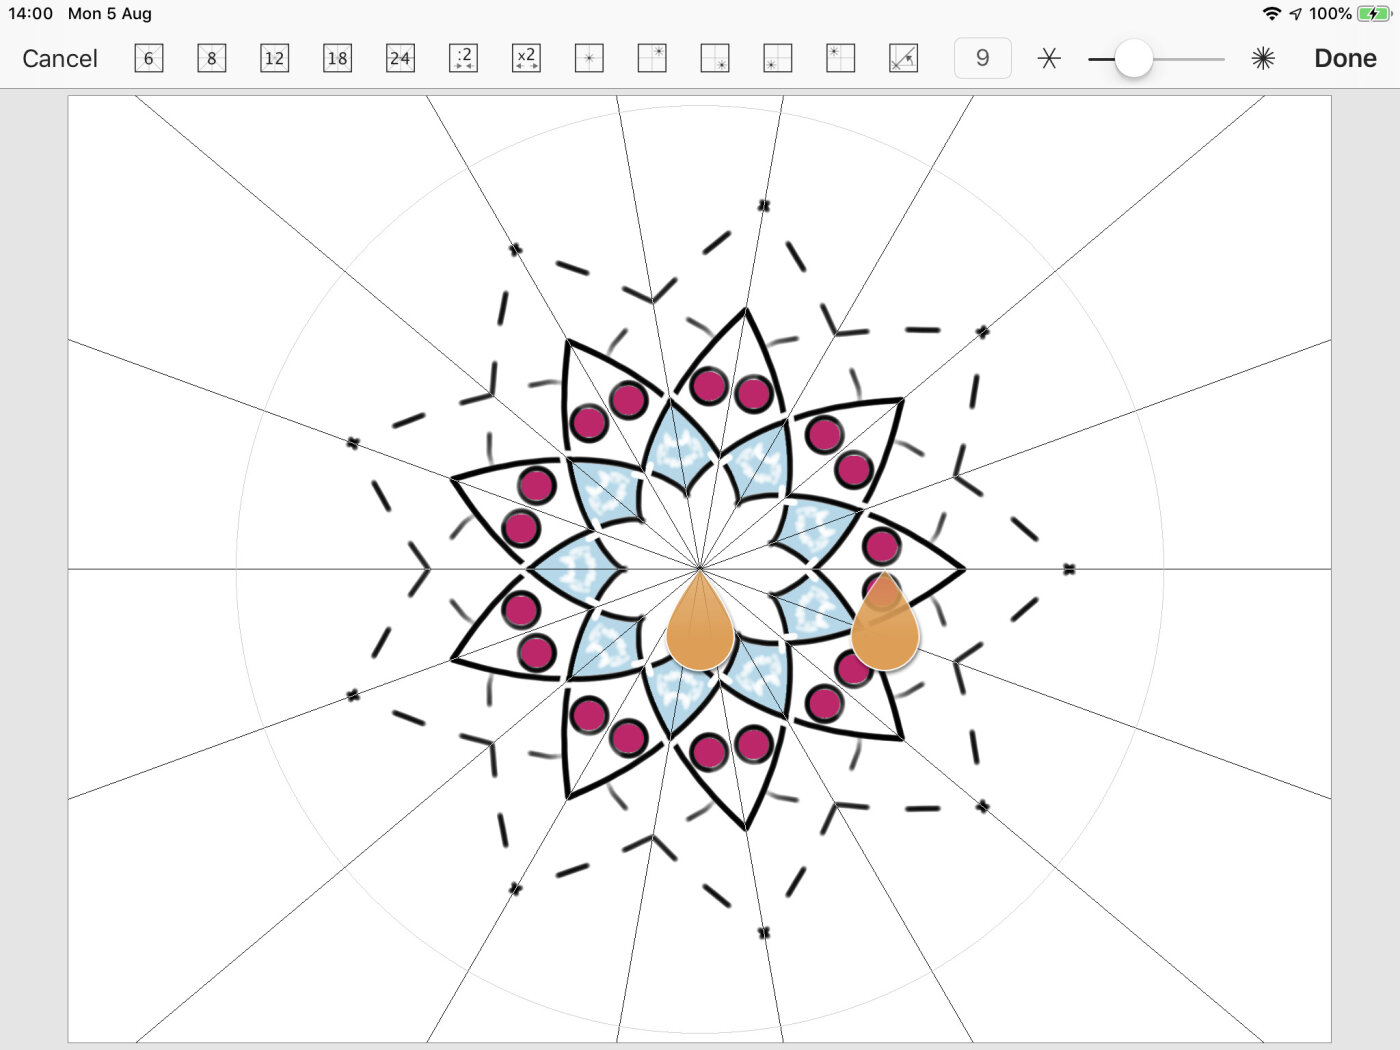 Mandala and Rotation symmetry presets.